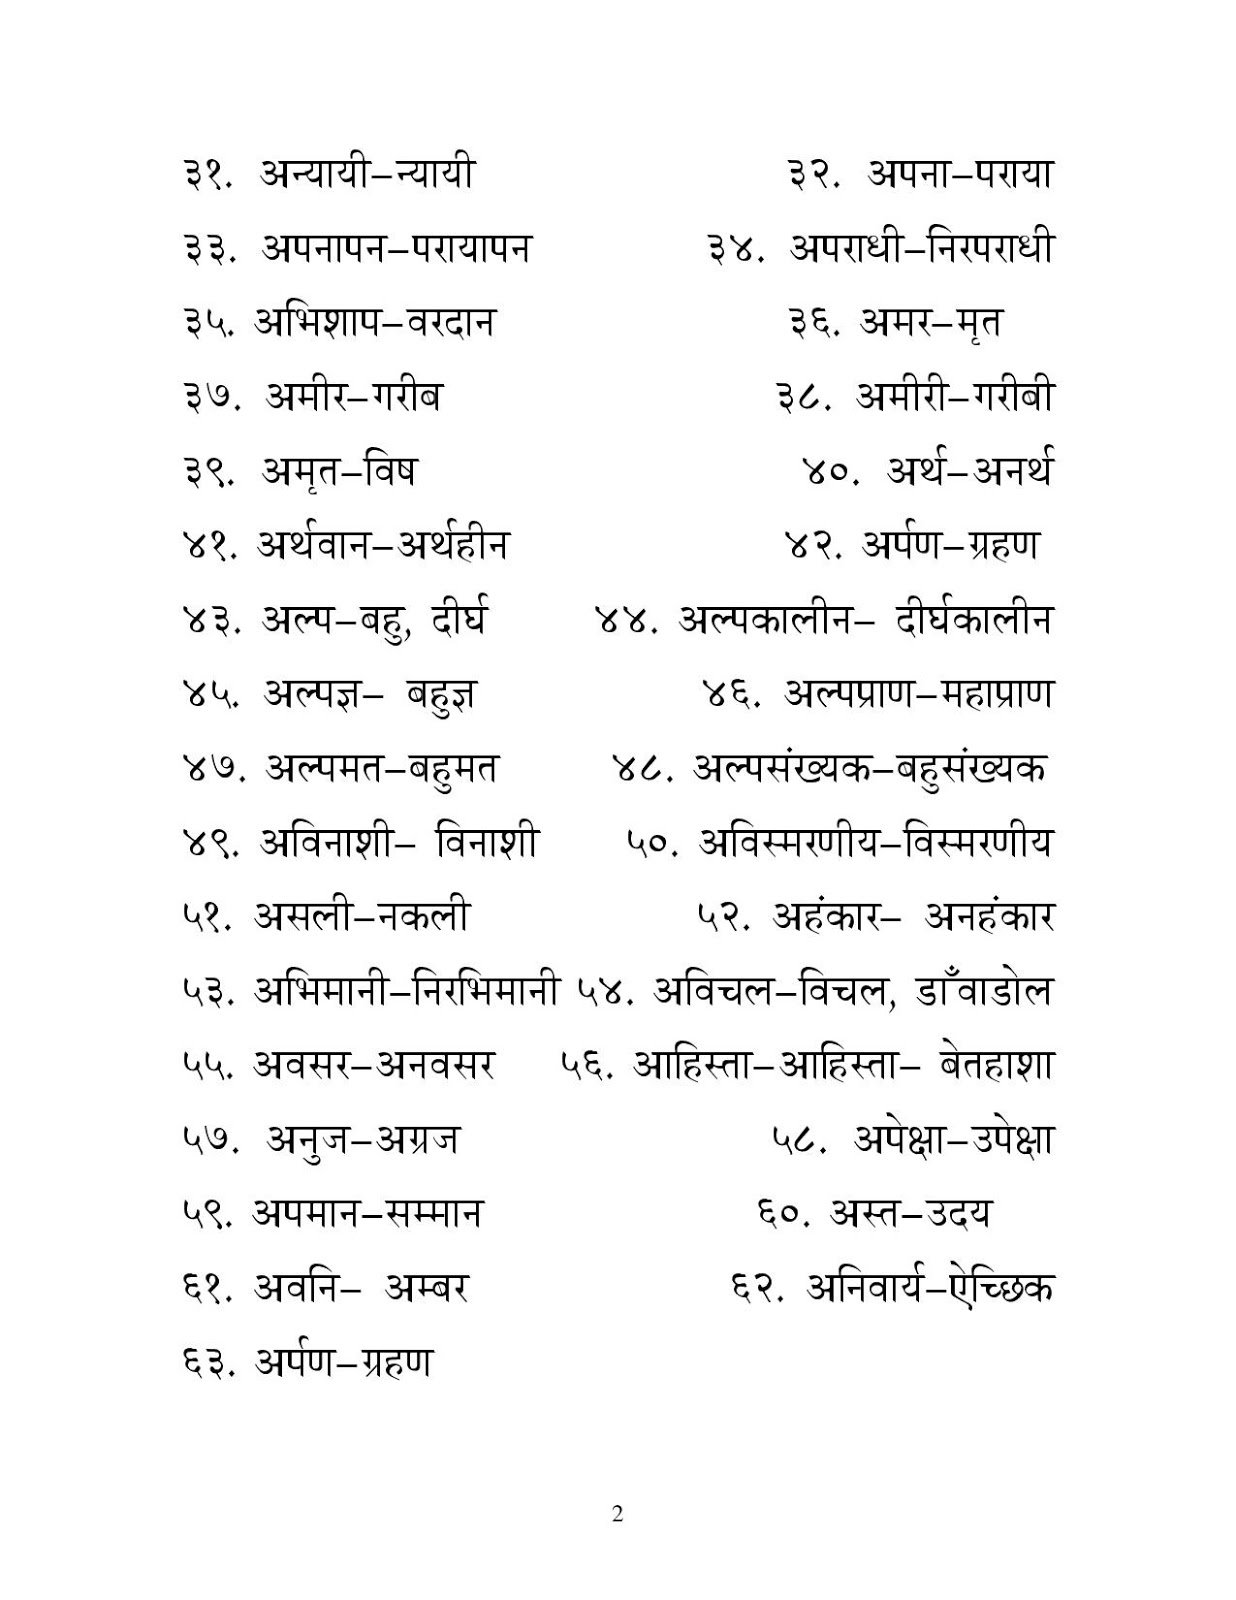 Worksheet For Class 2 In Hindi